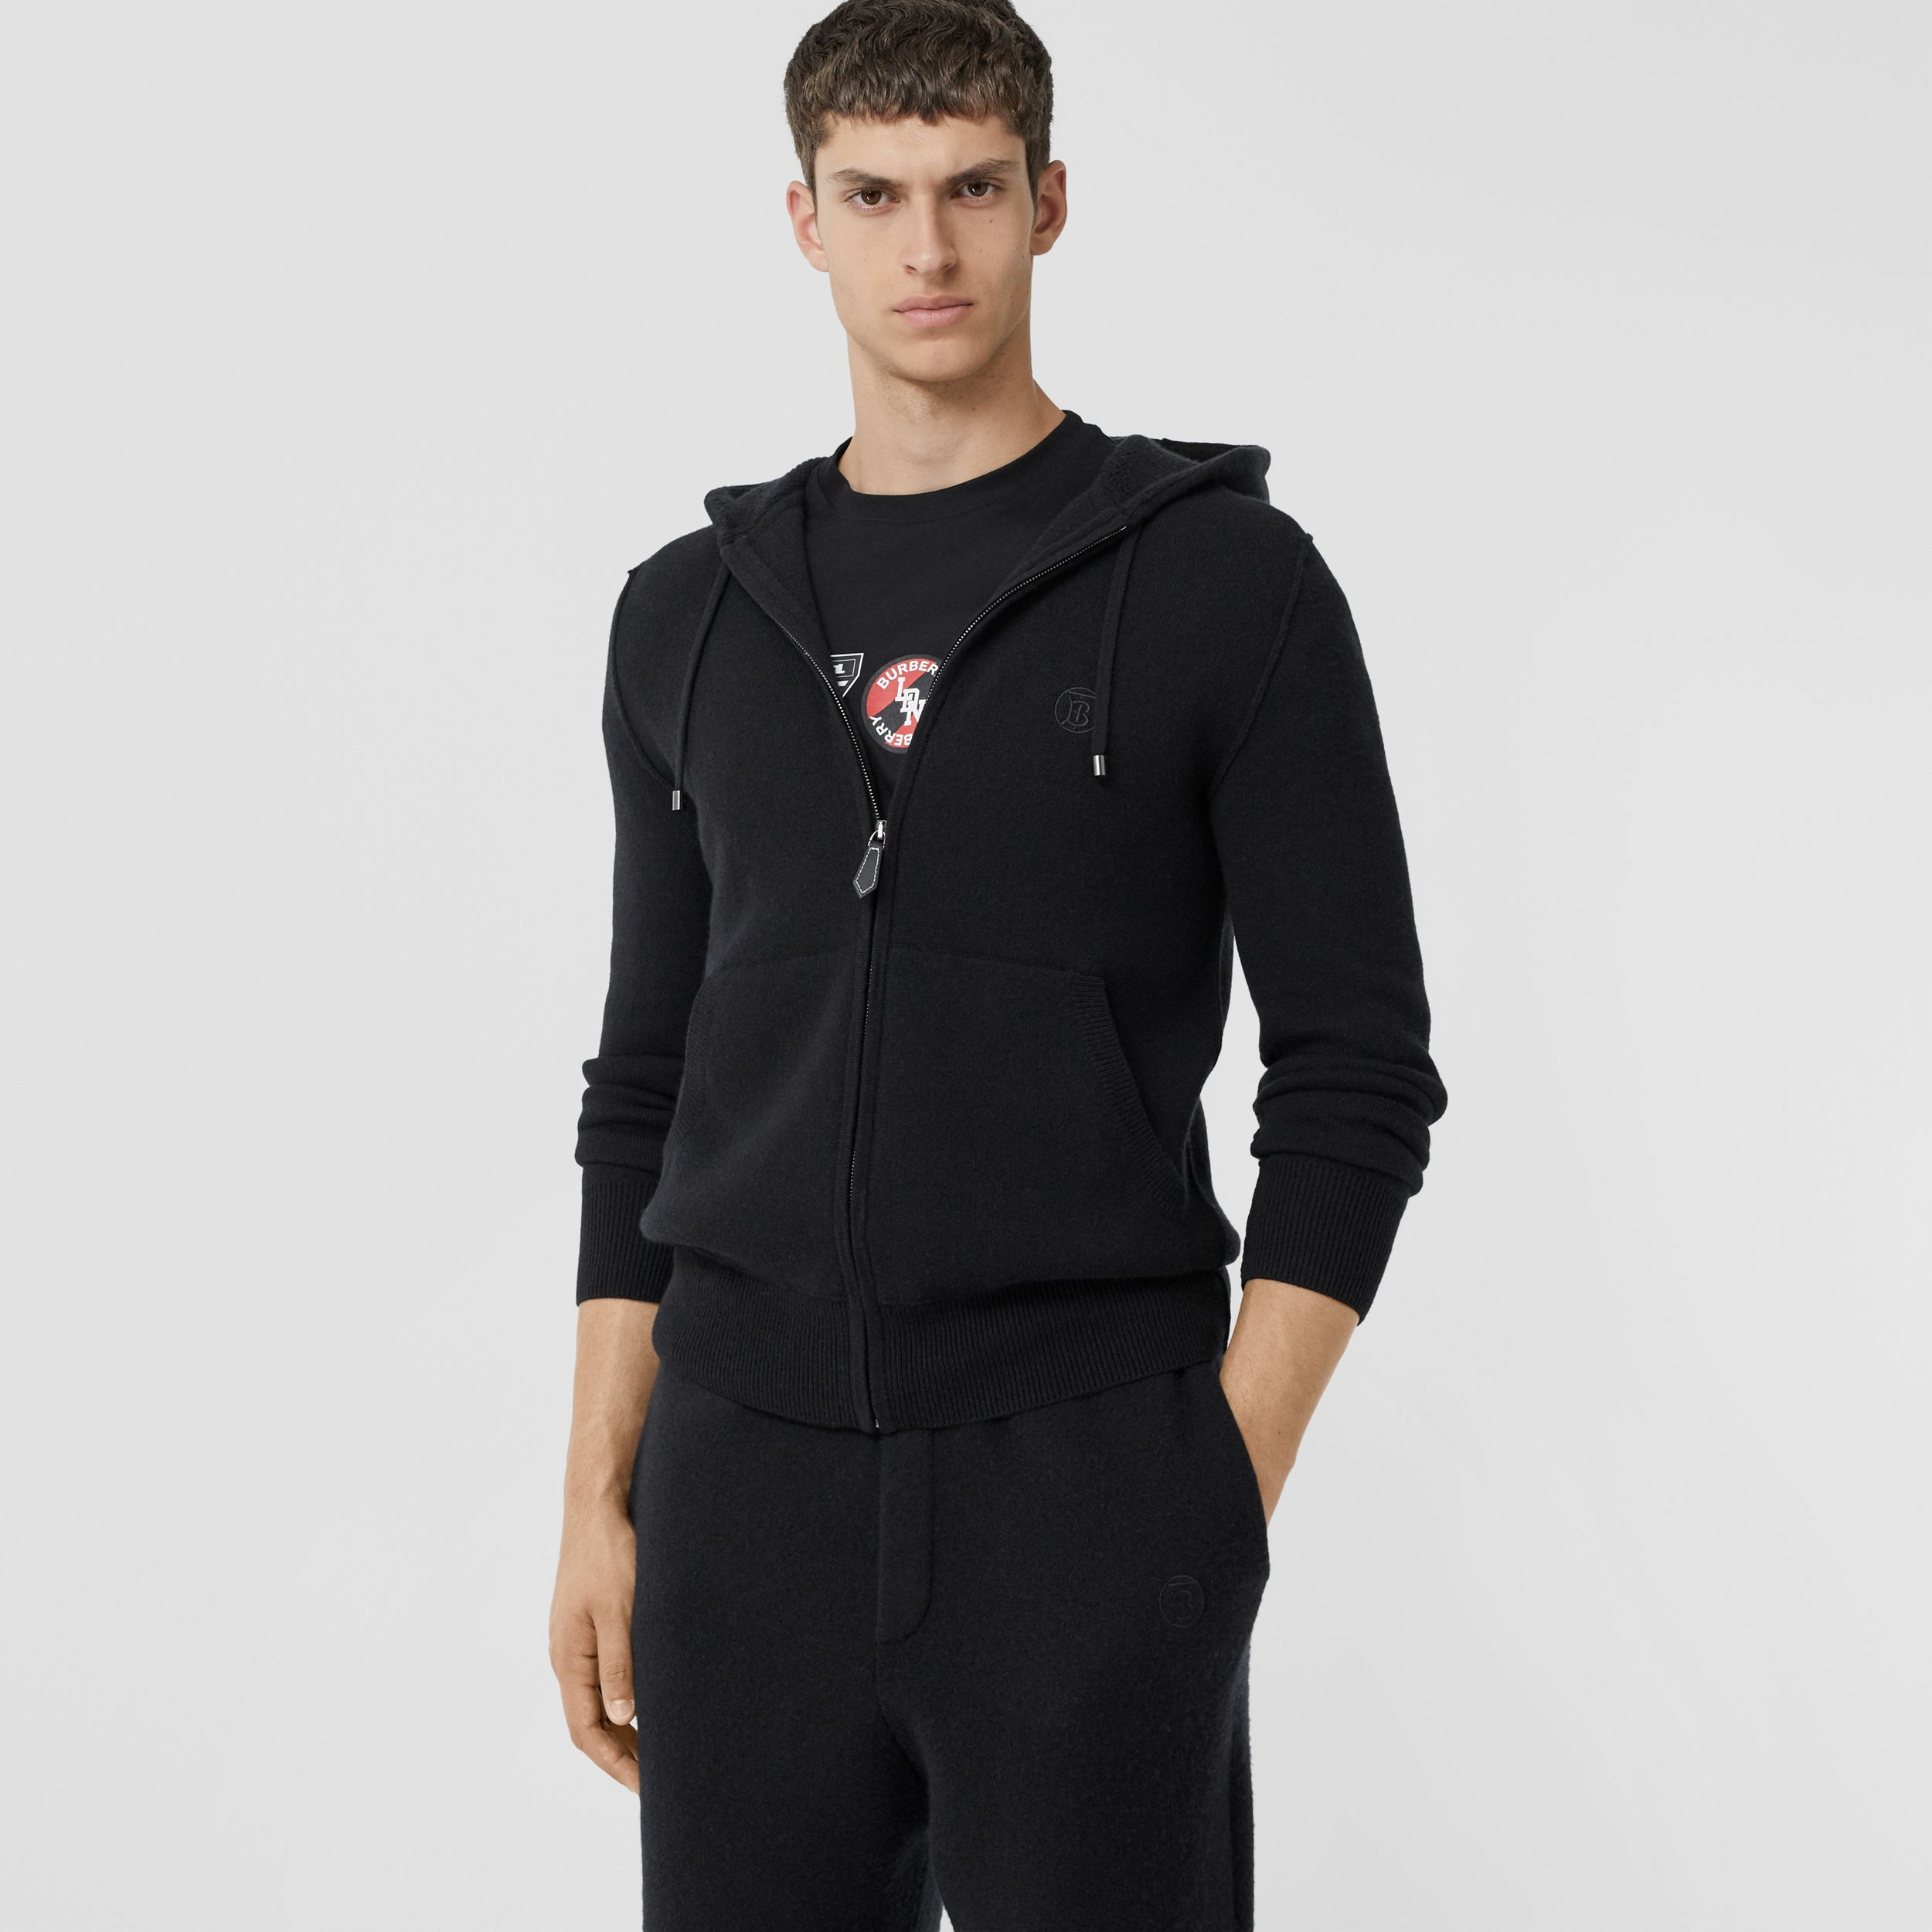 Monogram Motif Cashmere Blend Hooded Top in Black - Men | Burberry United States - 1